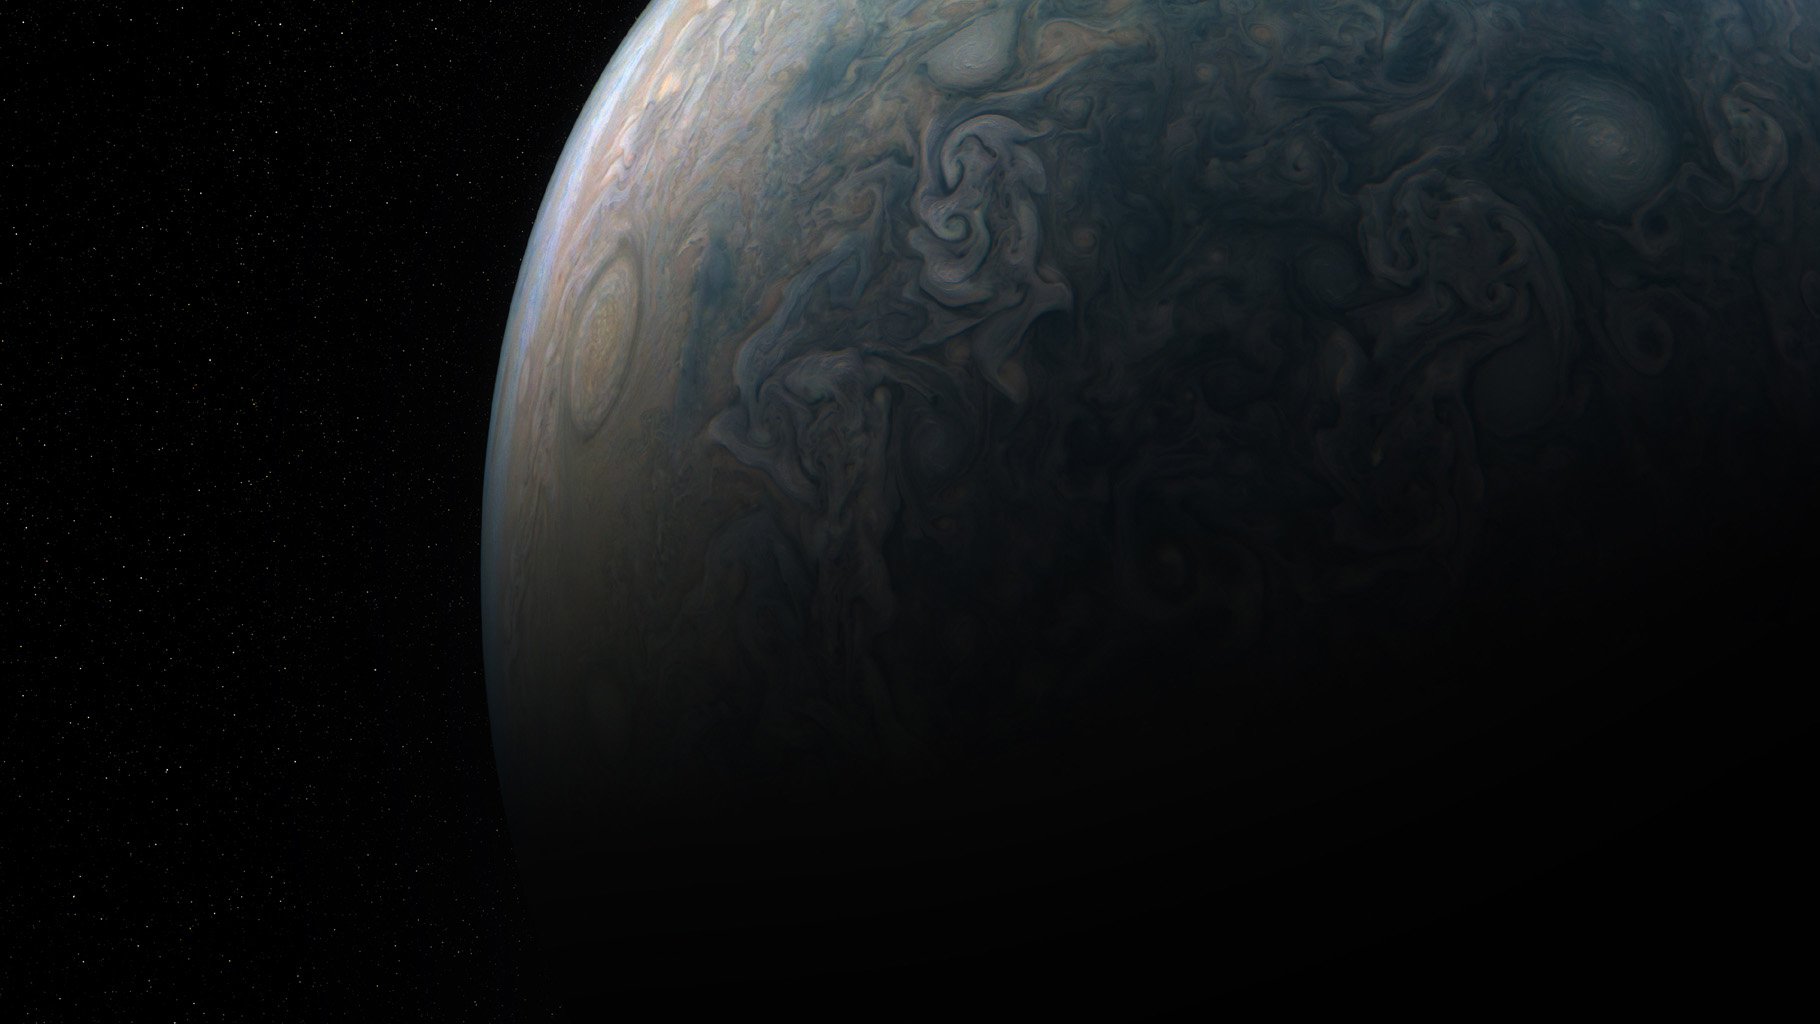 Tumultuous tempests in Jupiter's northern hemisphere are seen in this portrait taken by NASA's Juno spacecraft. Jupiter has cyclones and anticyclones, along with fast-moving jet streams that circle its globe.